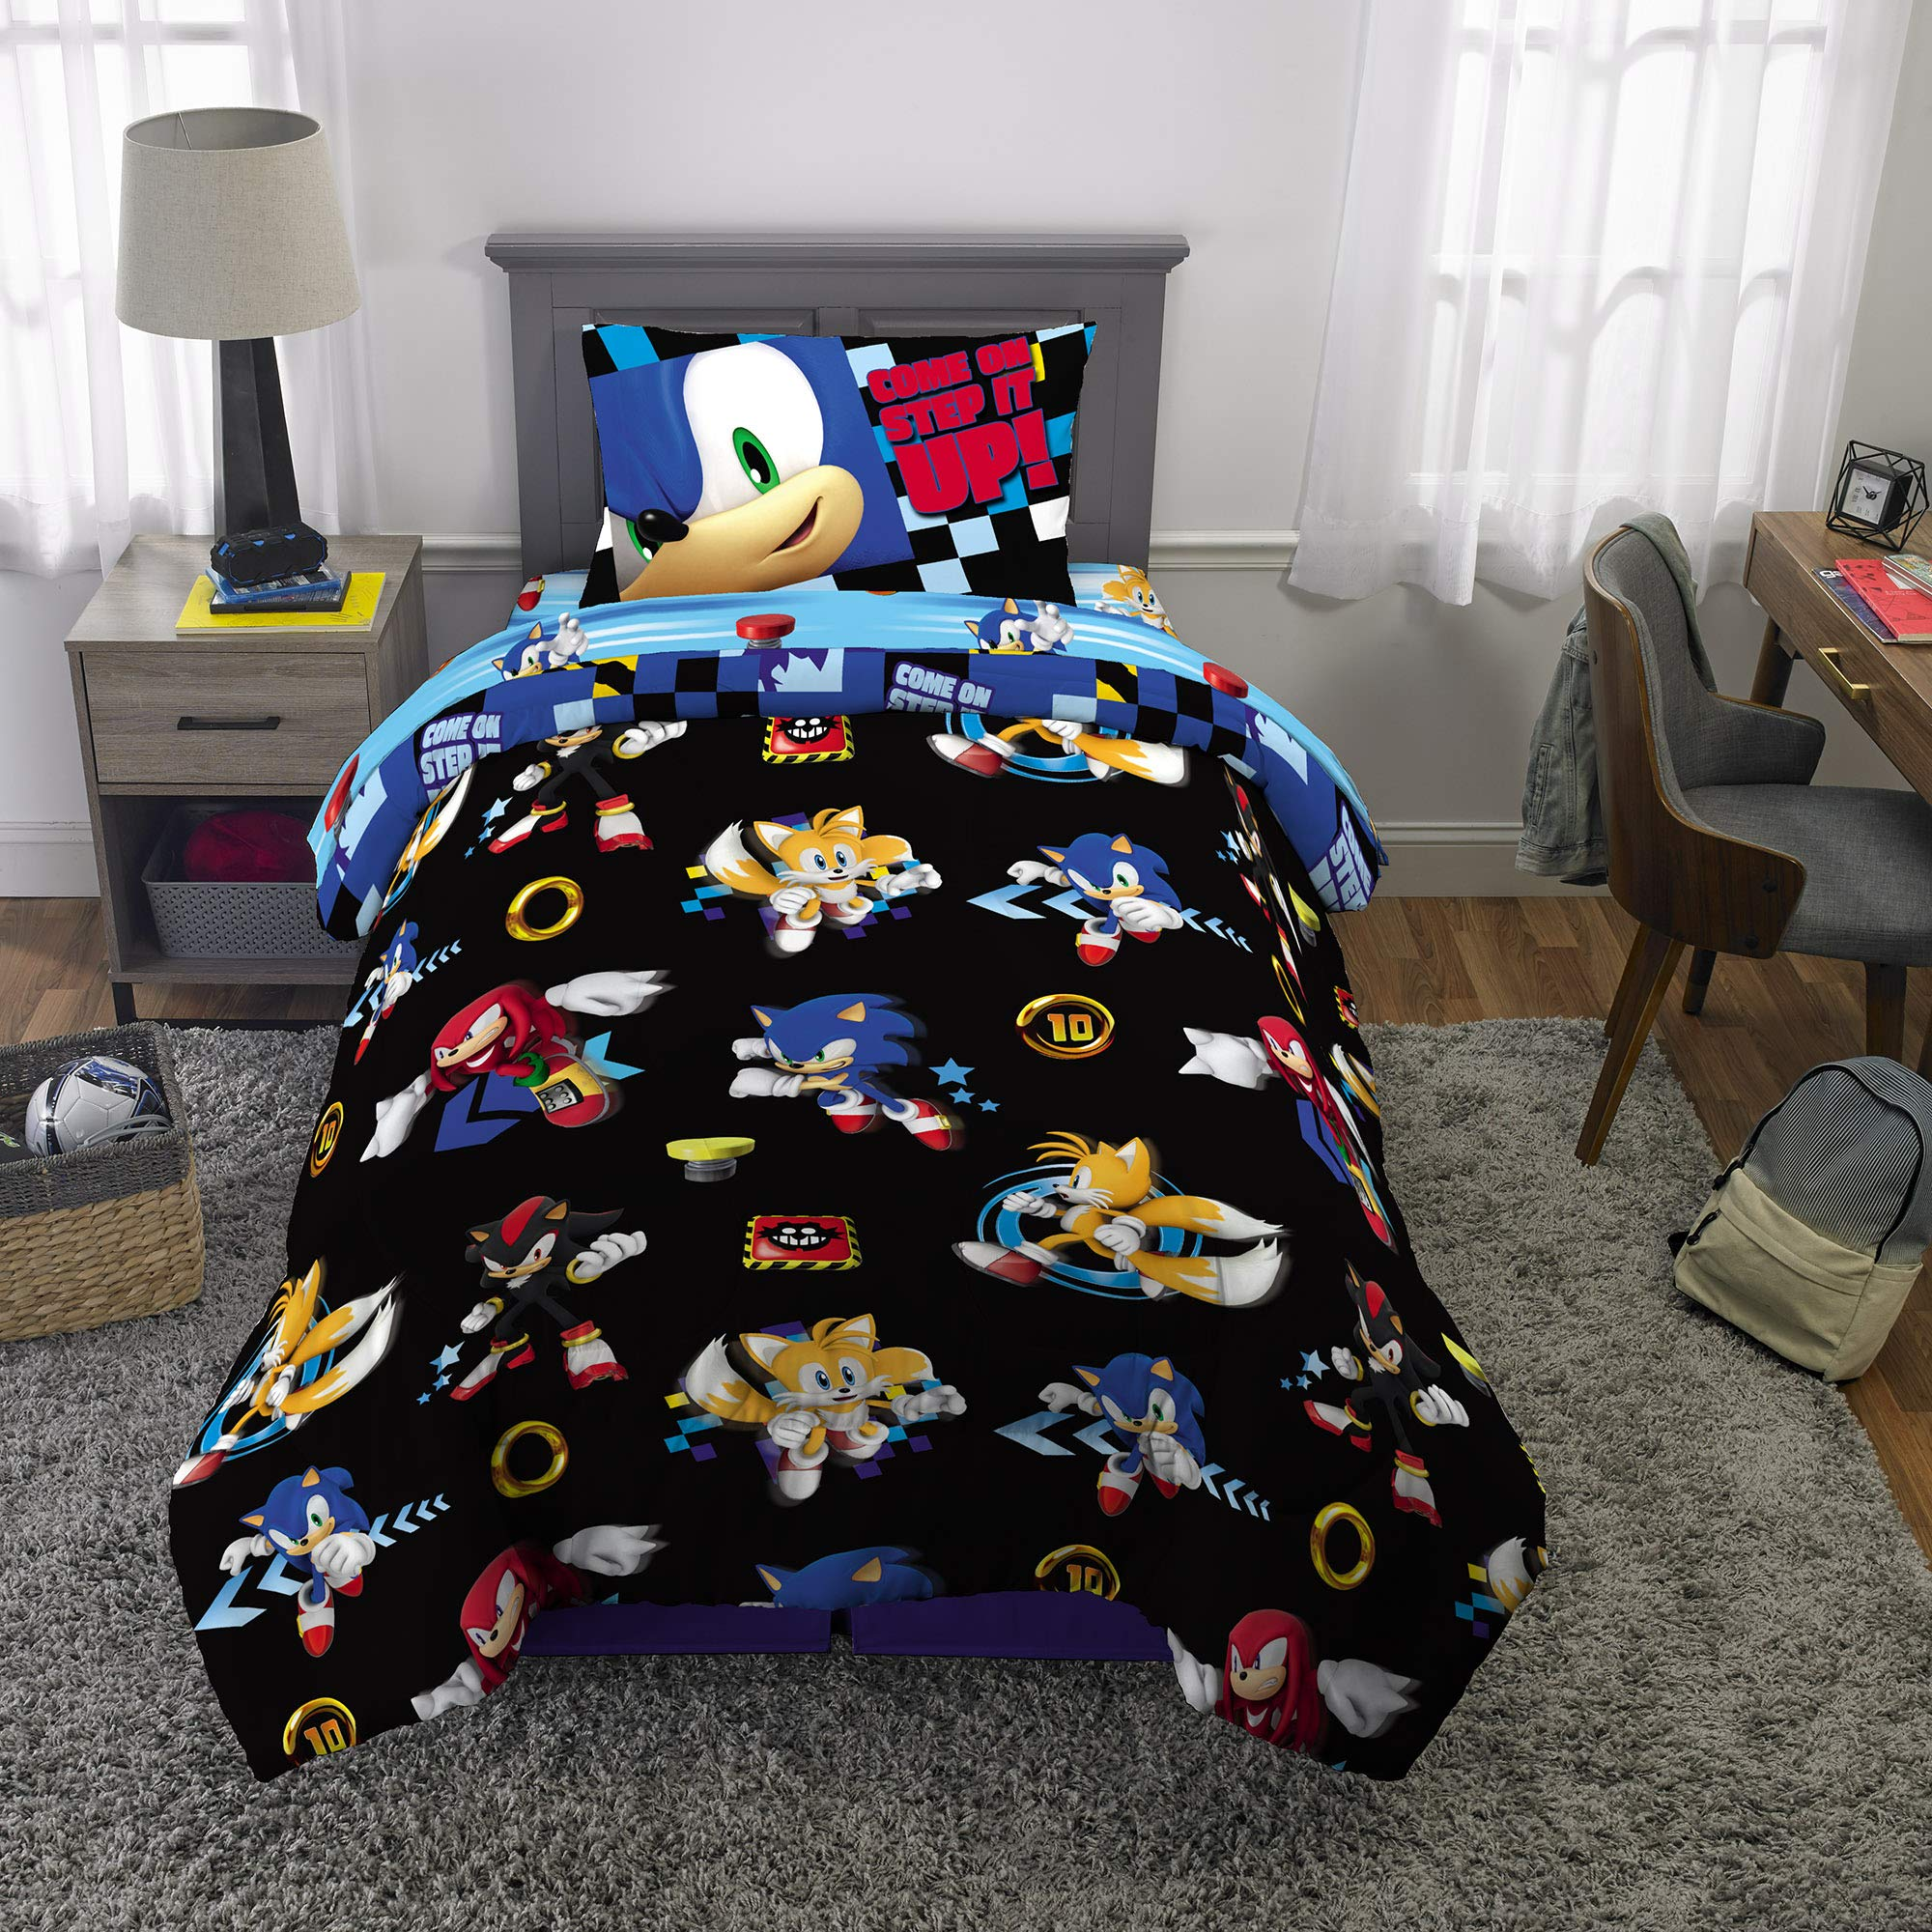 Franco Kids Bedding Super Soft Comforter and Sheet Set, 4 Piece Twin Size, Sonic The Hedgehog by Franco